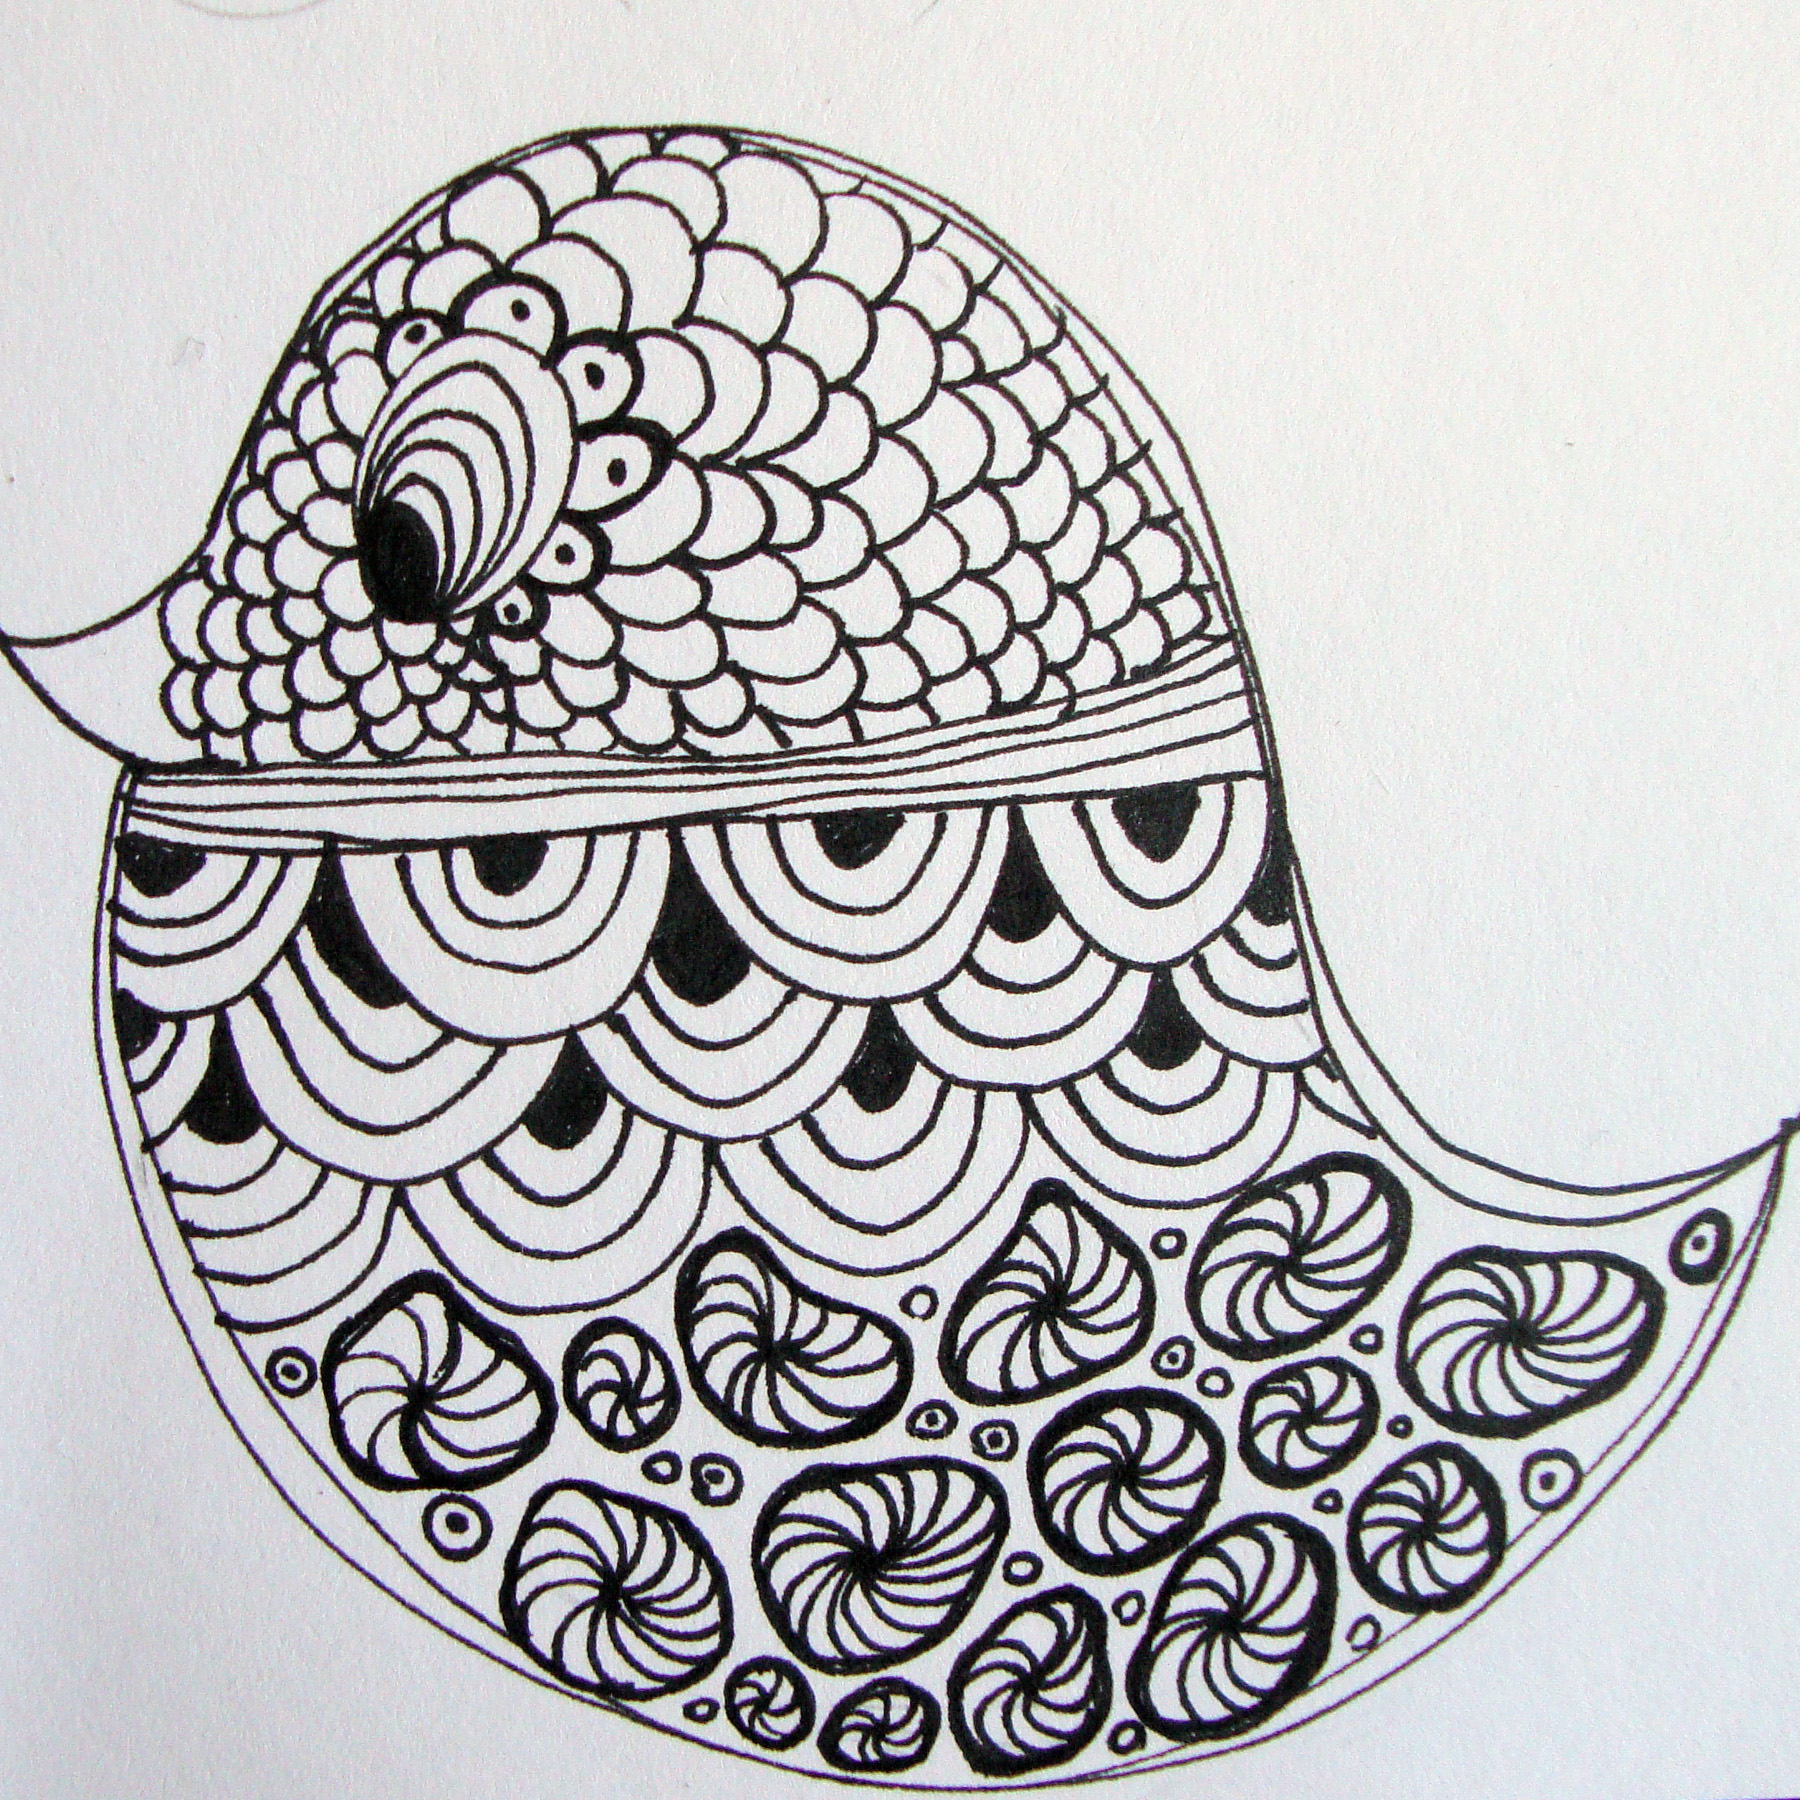 Easy Doodle Art Designs : Hoontoidly simple tumblr drawings patterns images